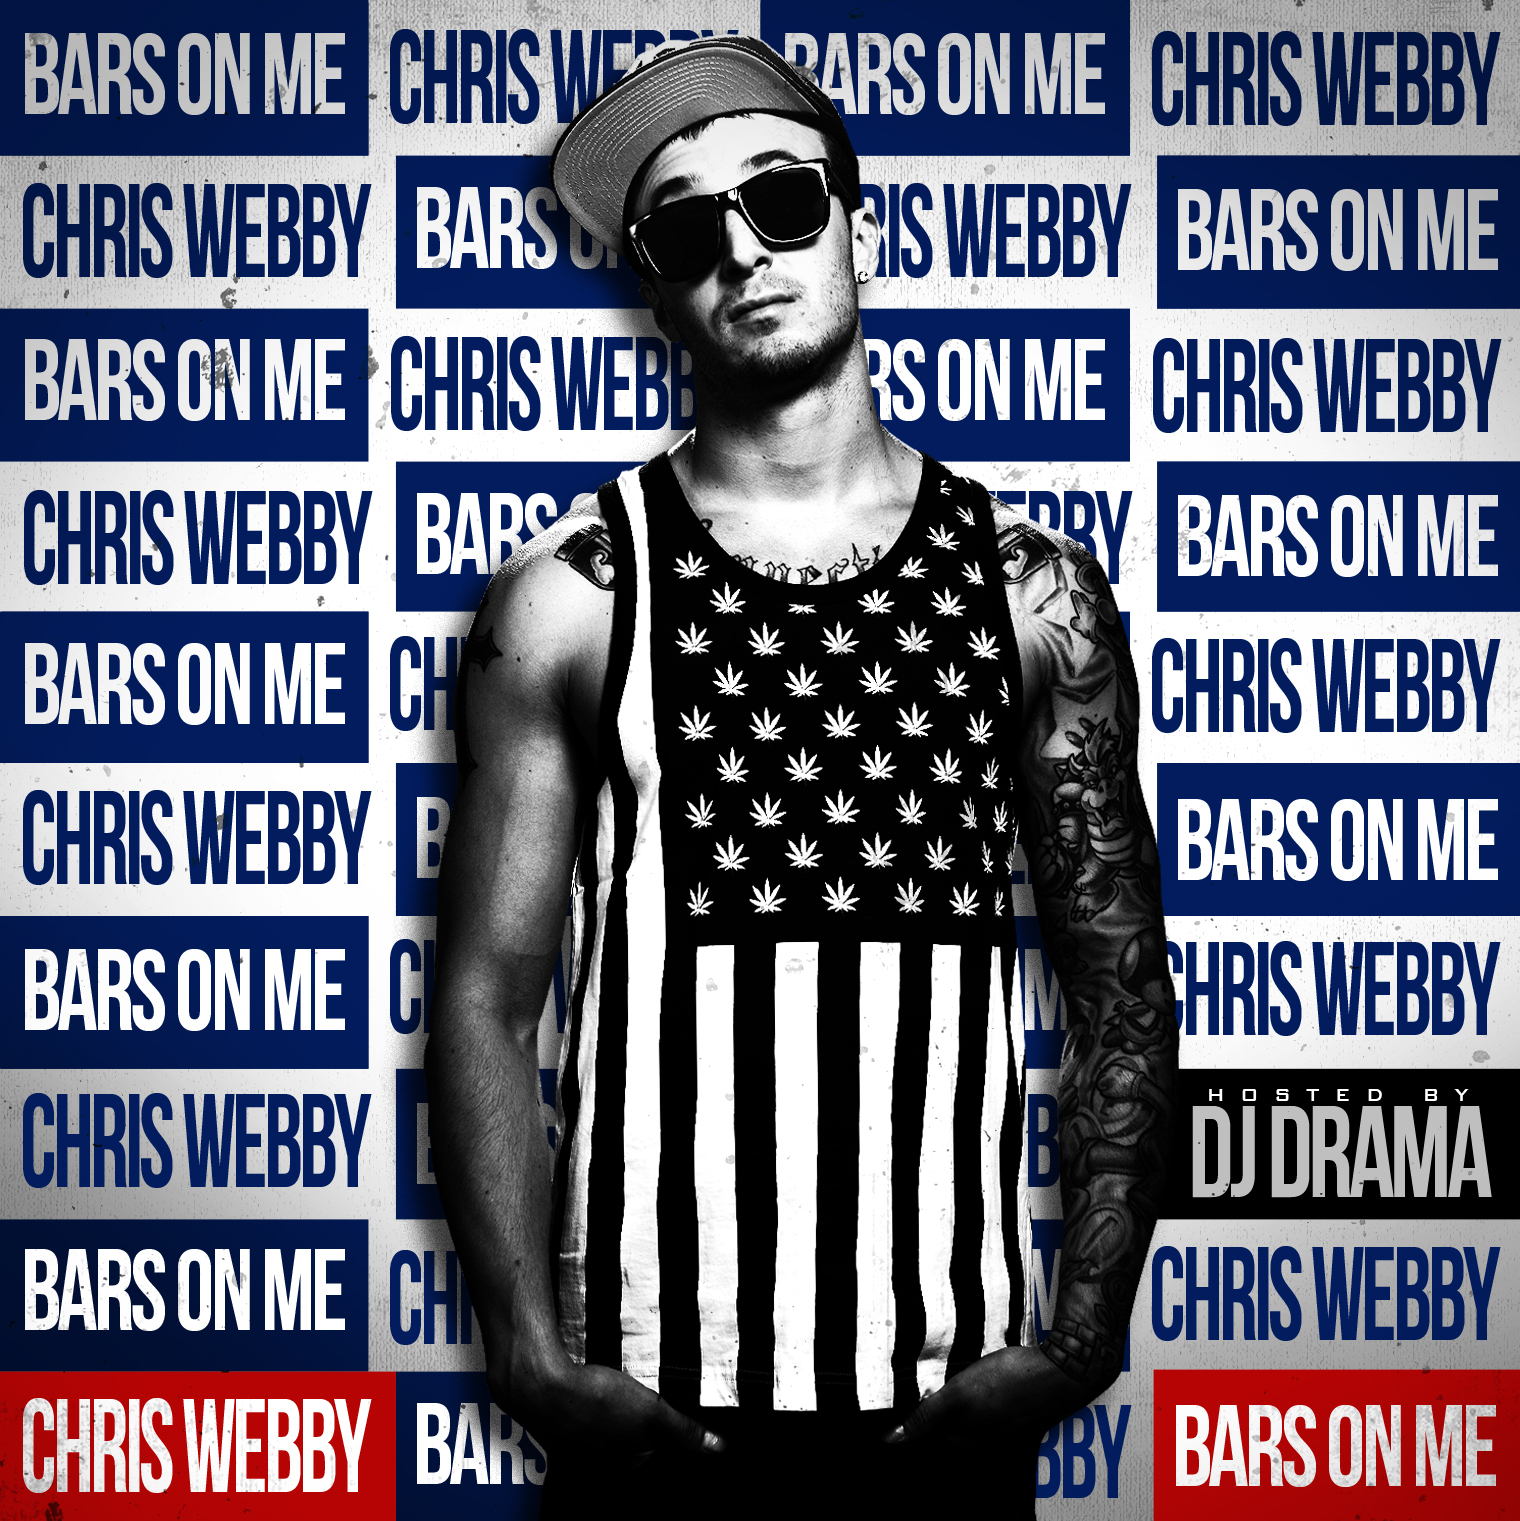 Chris-Webby-Bars-On-Me-Cover-High-Res-copy6